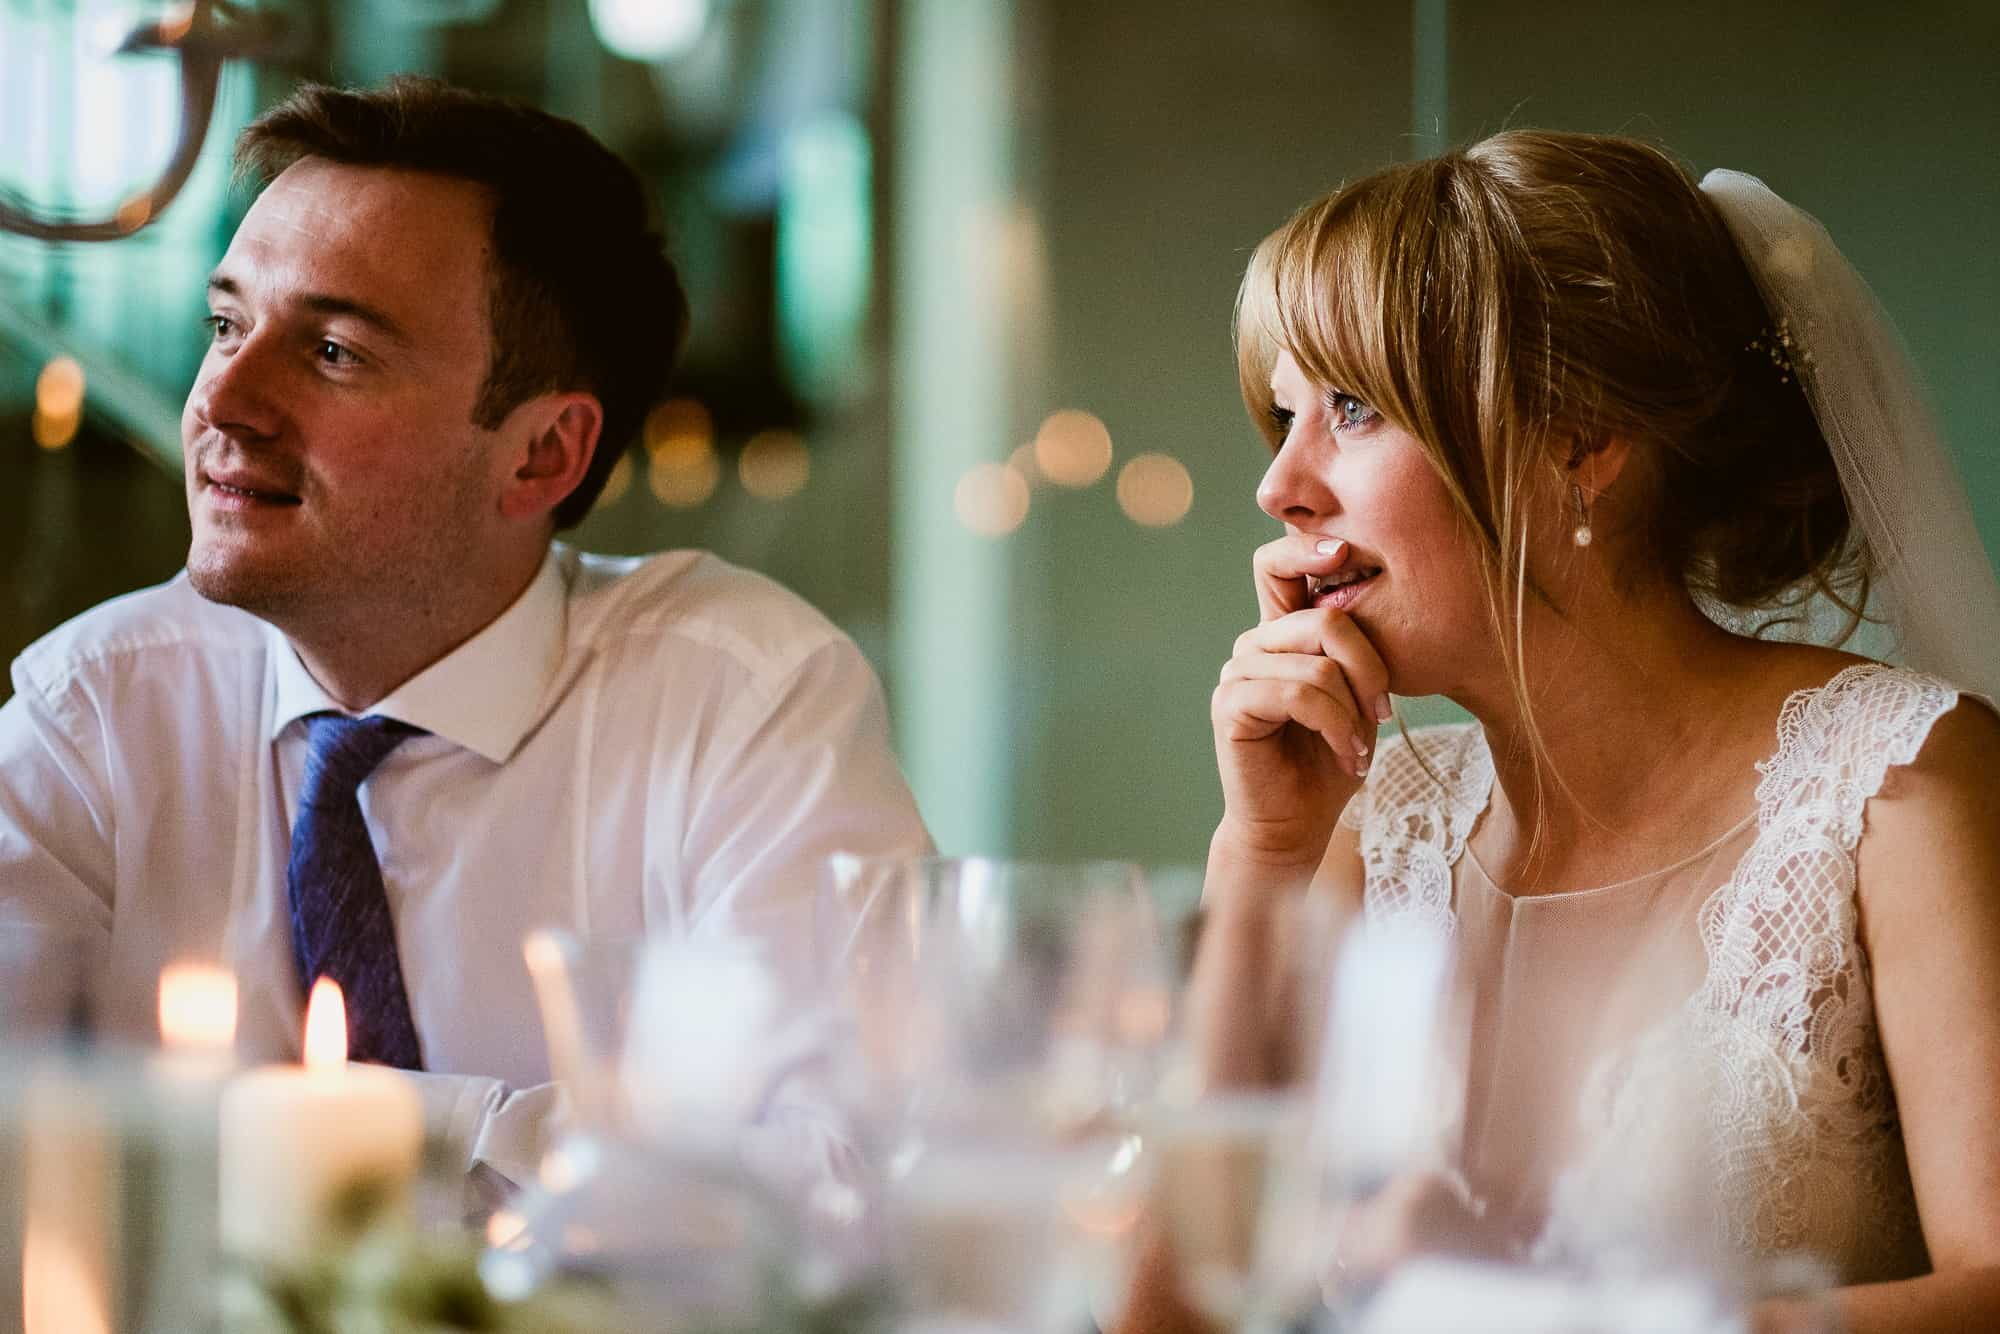 bethnal-green-town-hall-hotel-wedding-photography-0056